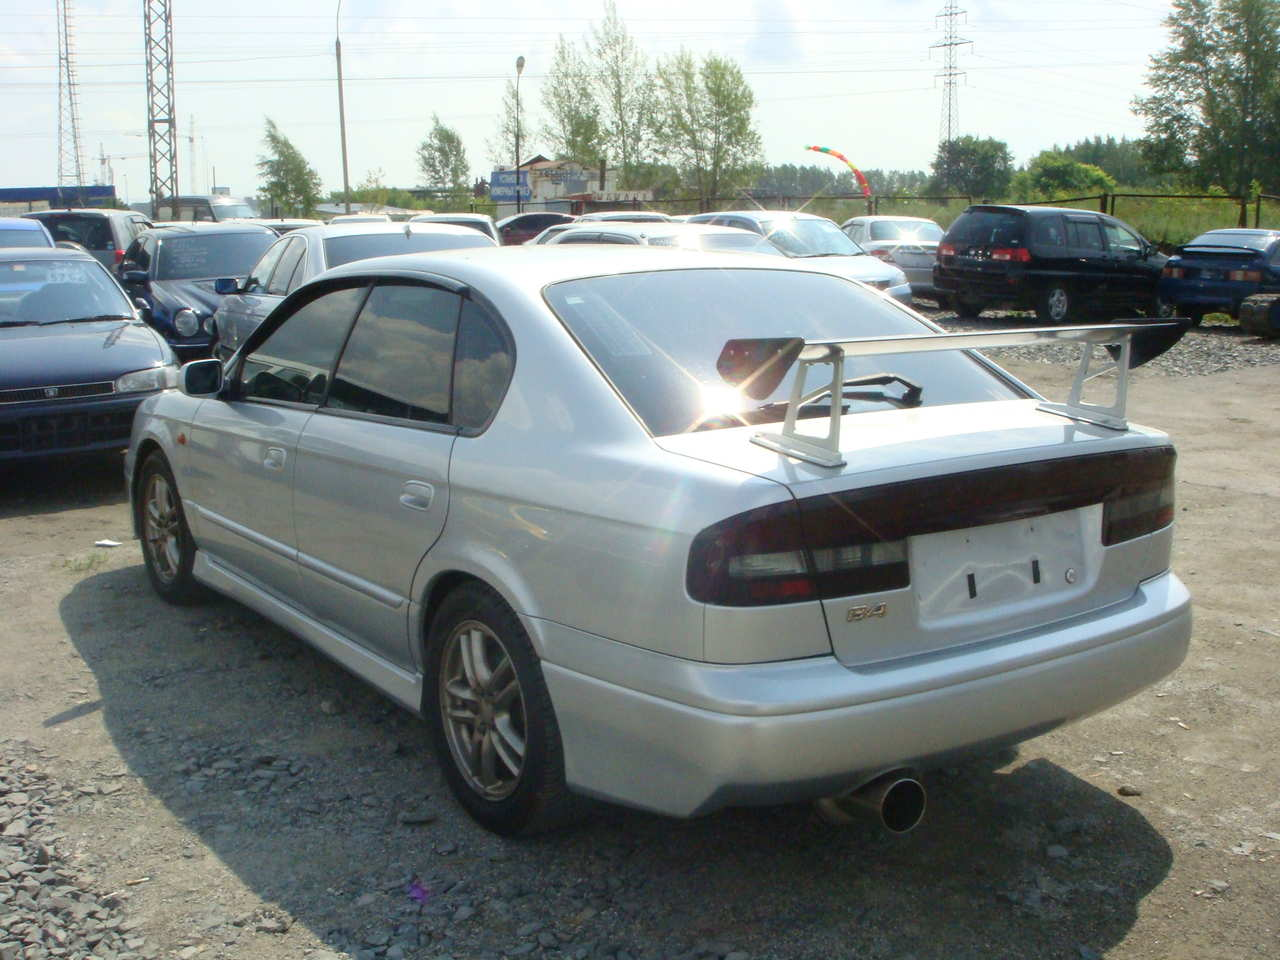 used 2002 subaru legacy b4 photos 2000cc gasoline manual for sale. Black Bedroom Furniture Sets. Home Design Ideas